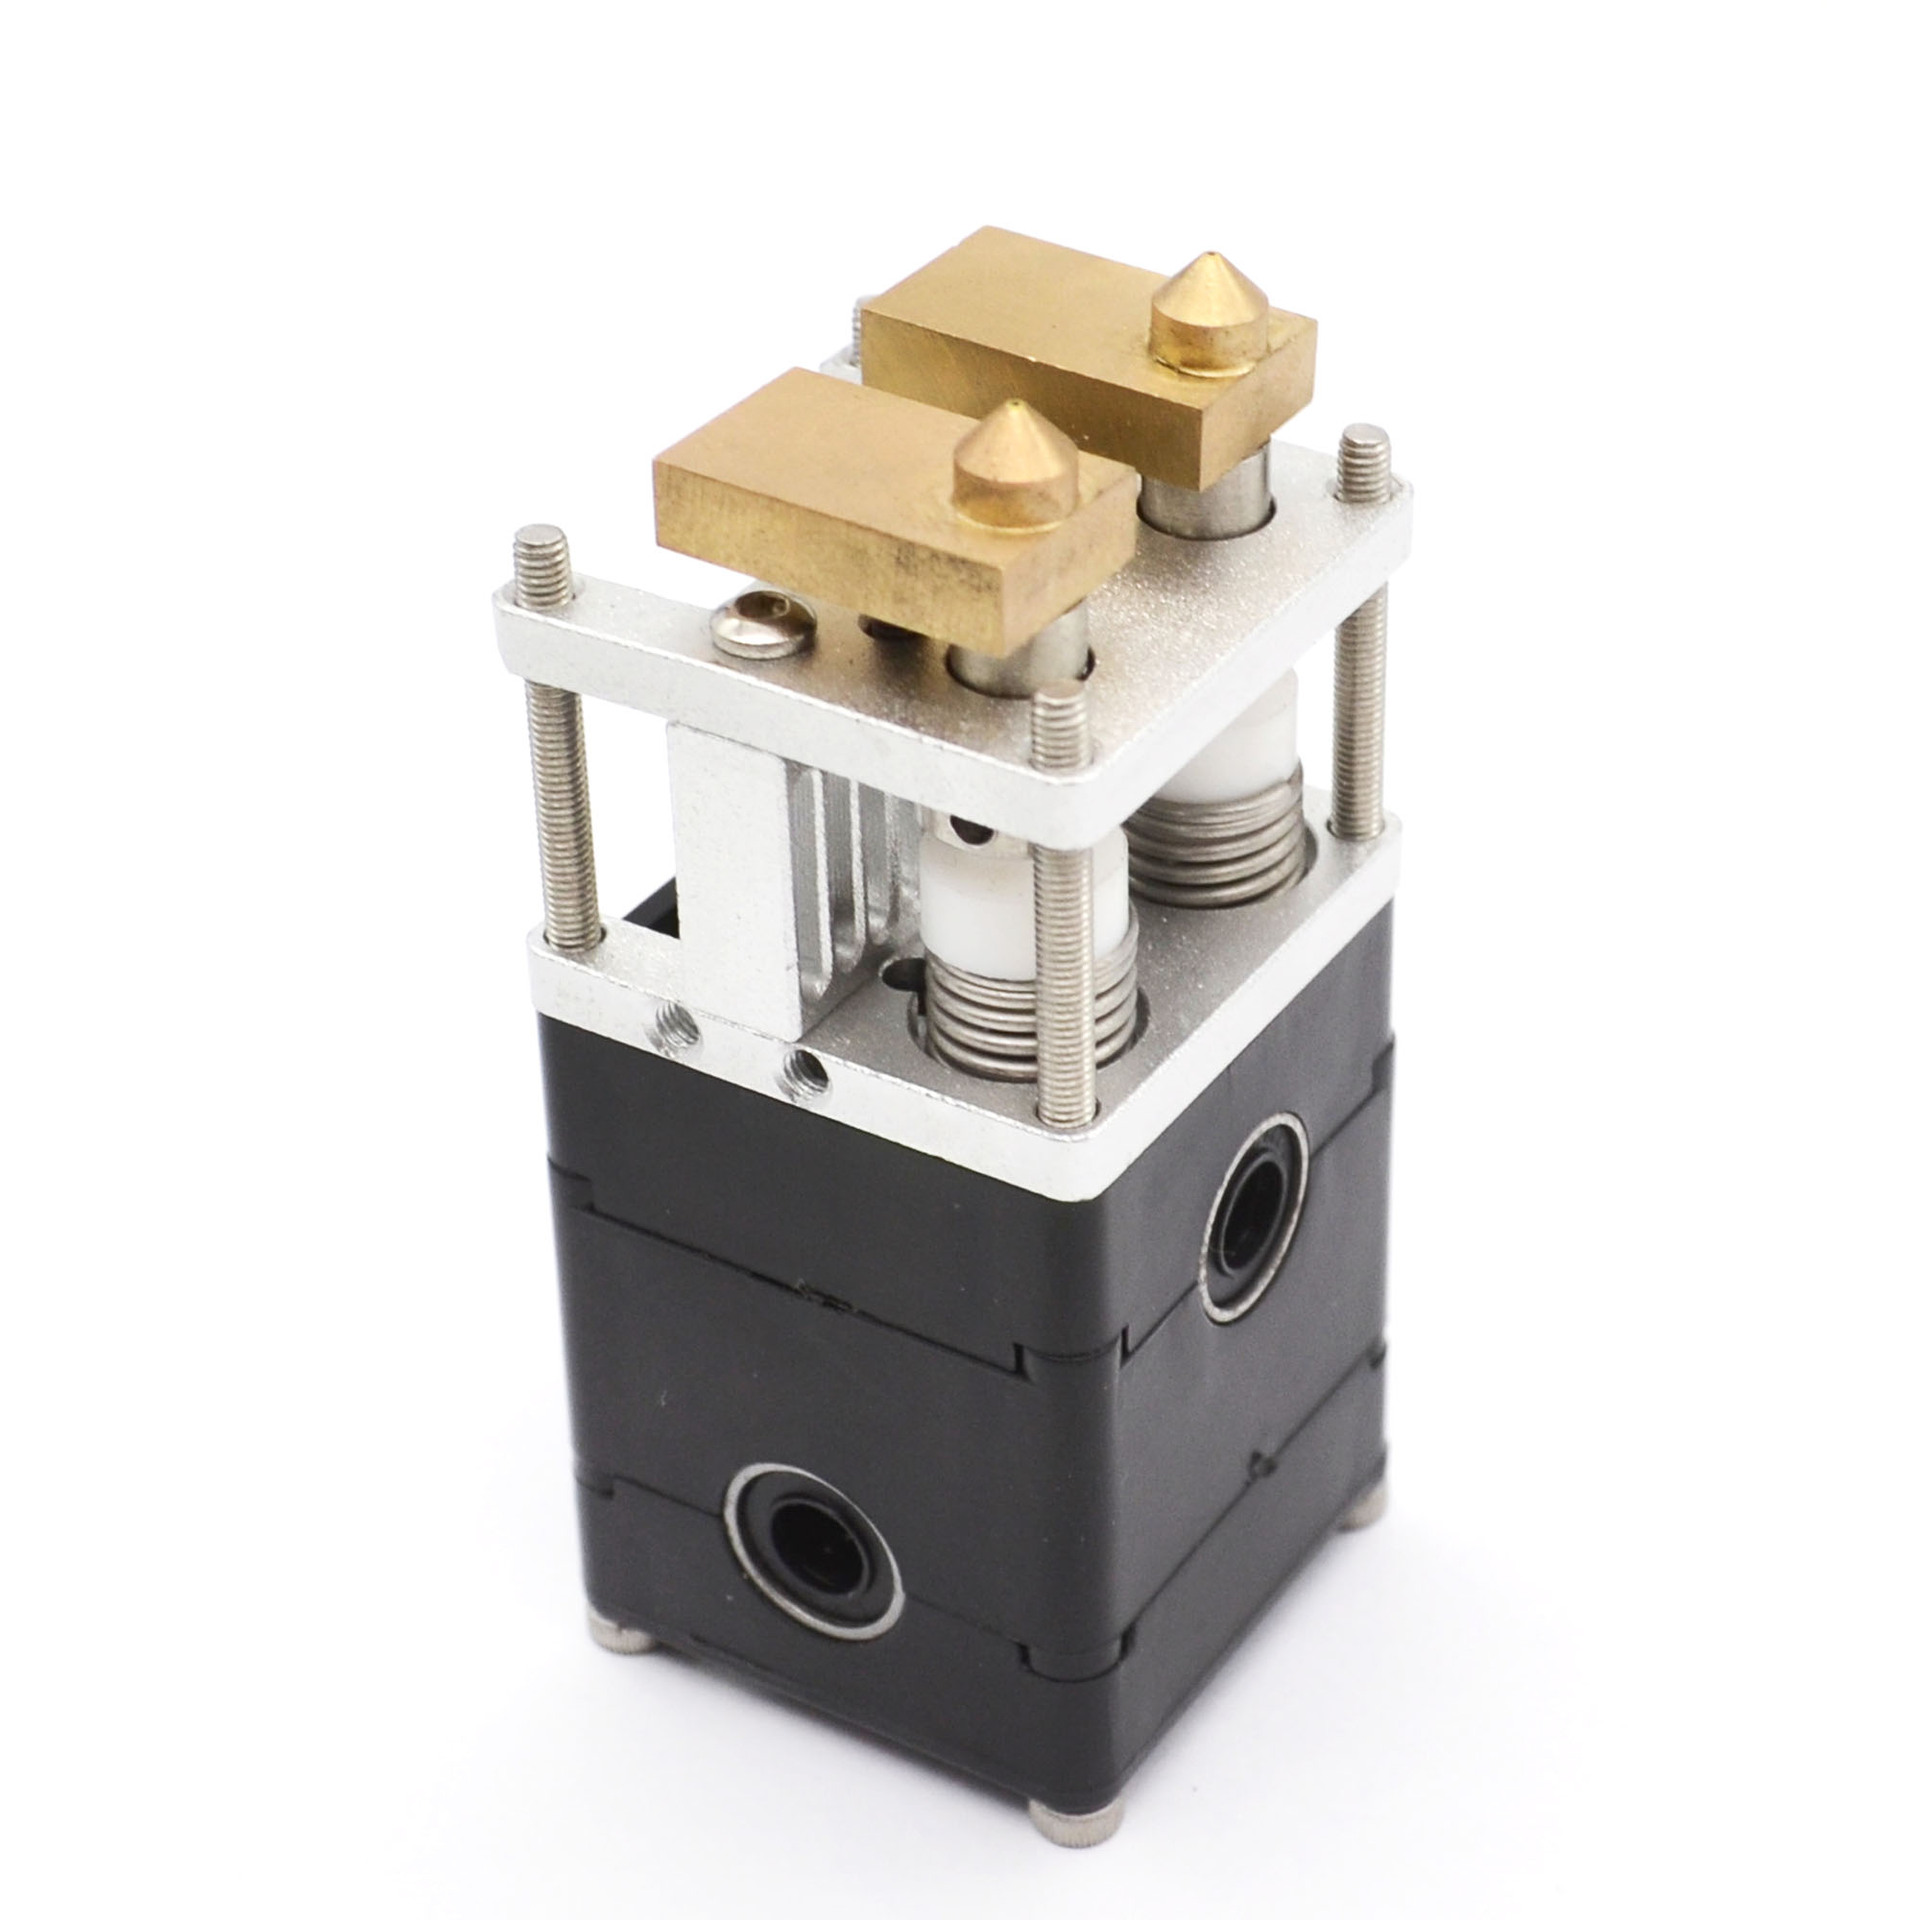 3D Printer parts Ulimaker 2 UM2 Dual print head Extruder full kit with Coupling 0.4mm Nozzle for 1.75/3.0mm filament wholesale wanhao 3d printe d4s multi shape samples making dual extruder printing machine print with abs pla pva wood filament